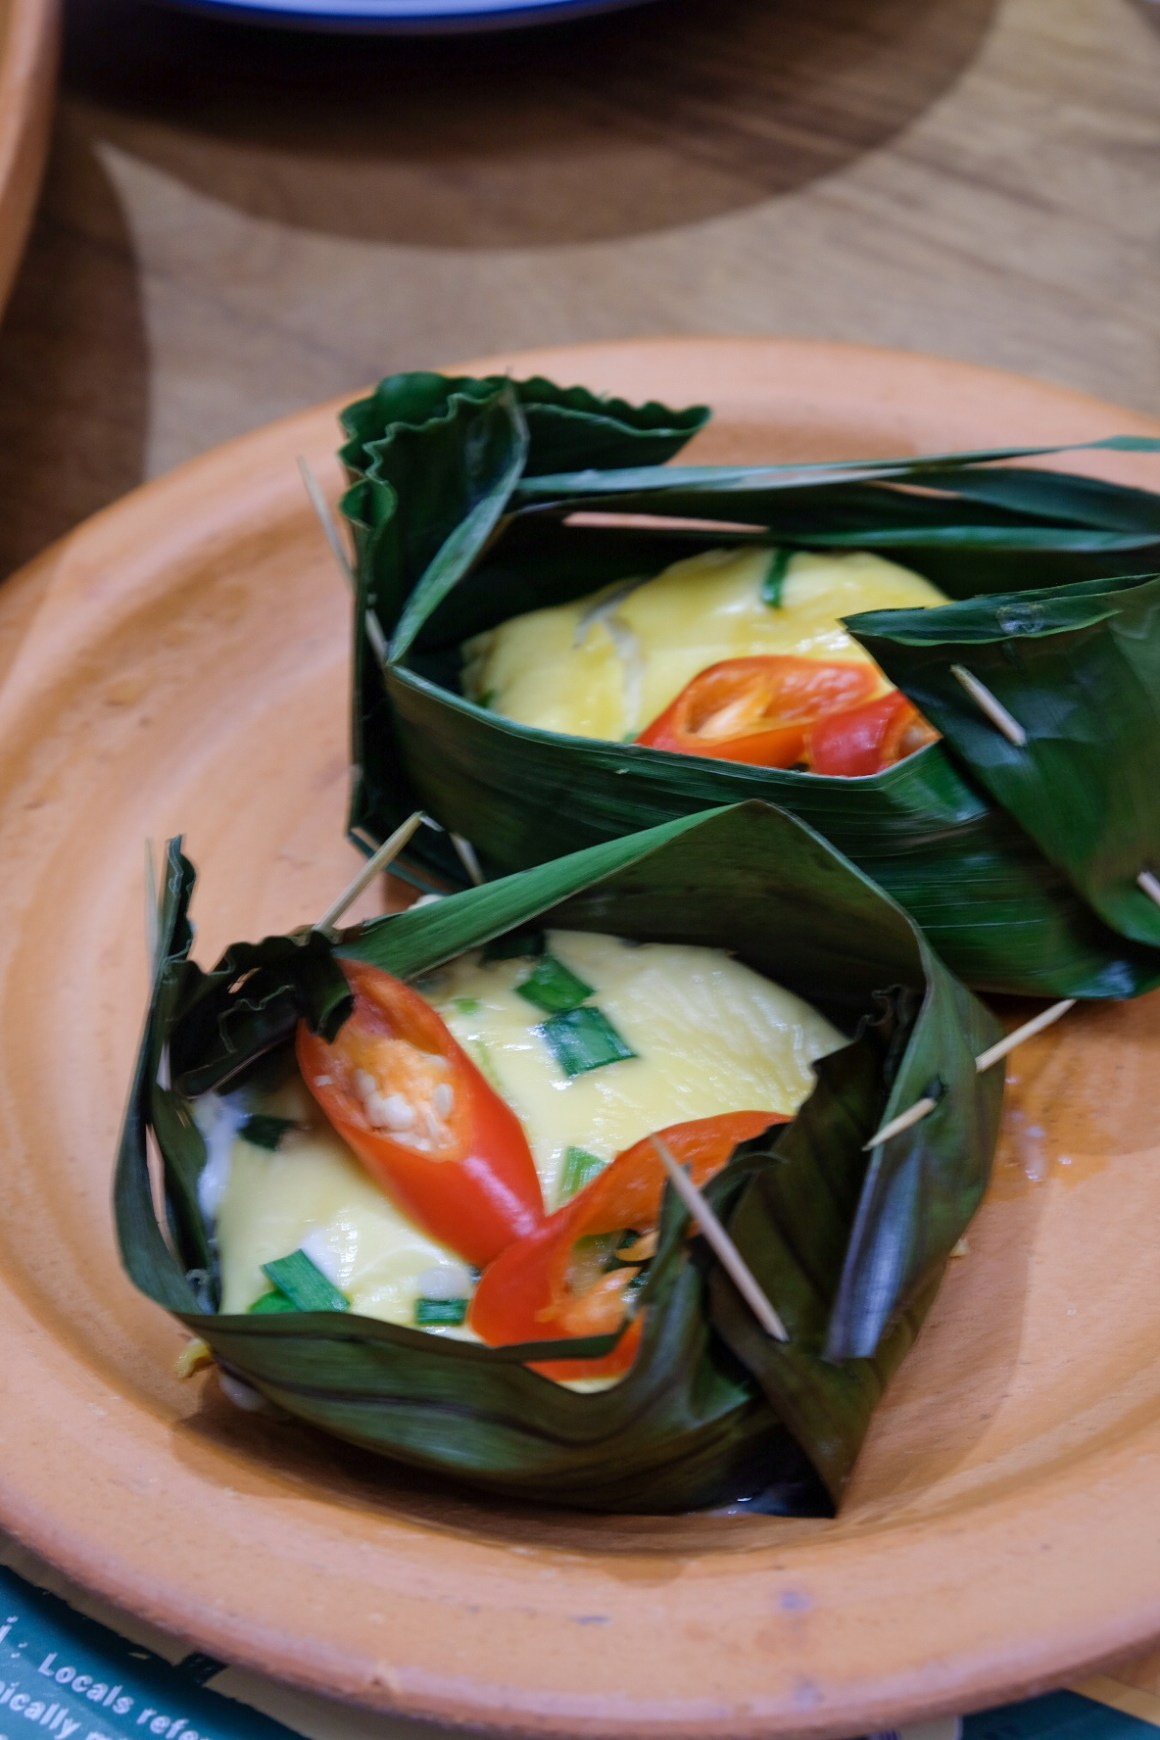 One Meal Around Thailand At Baan Ying Singapore - Khai Pam (Grilled Omelette)